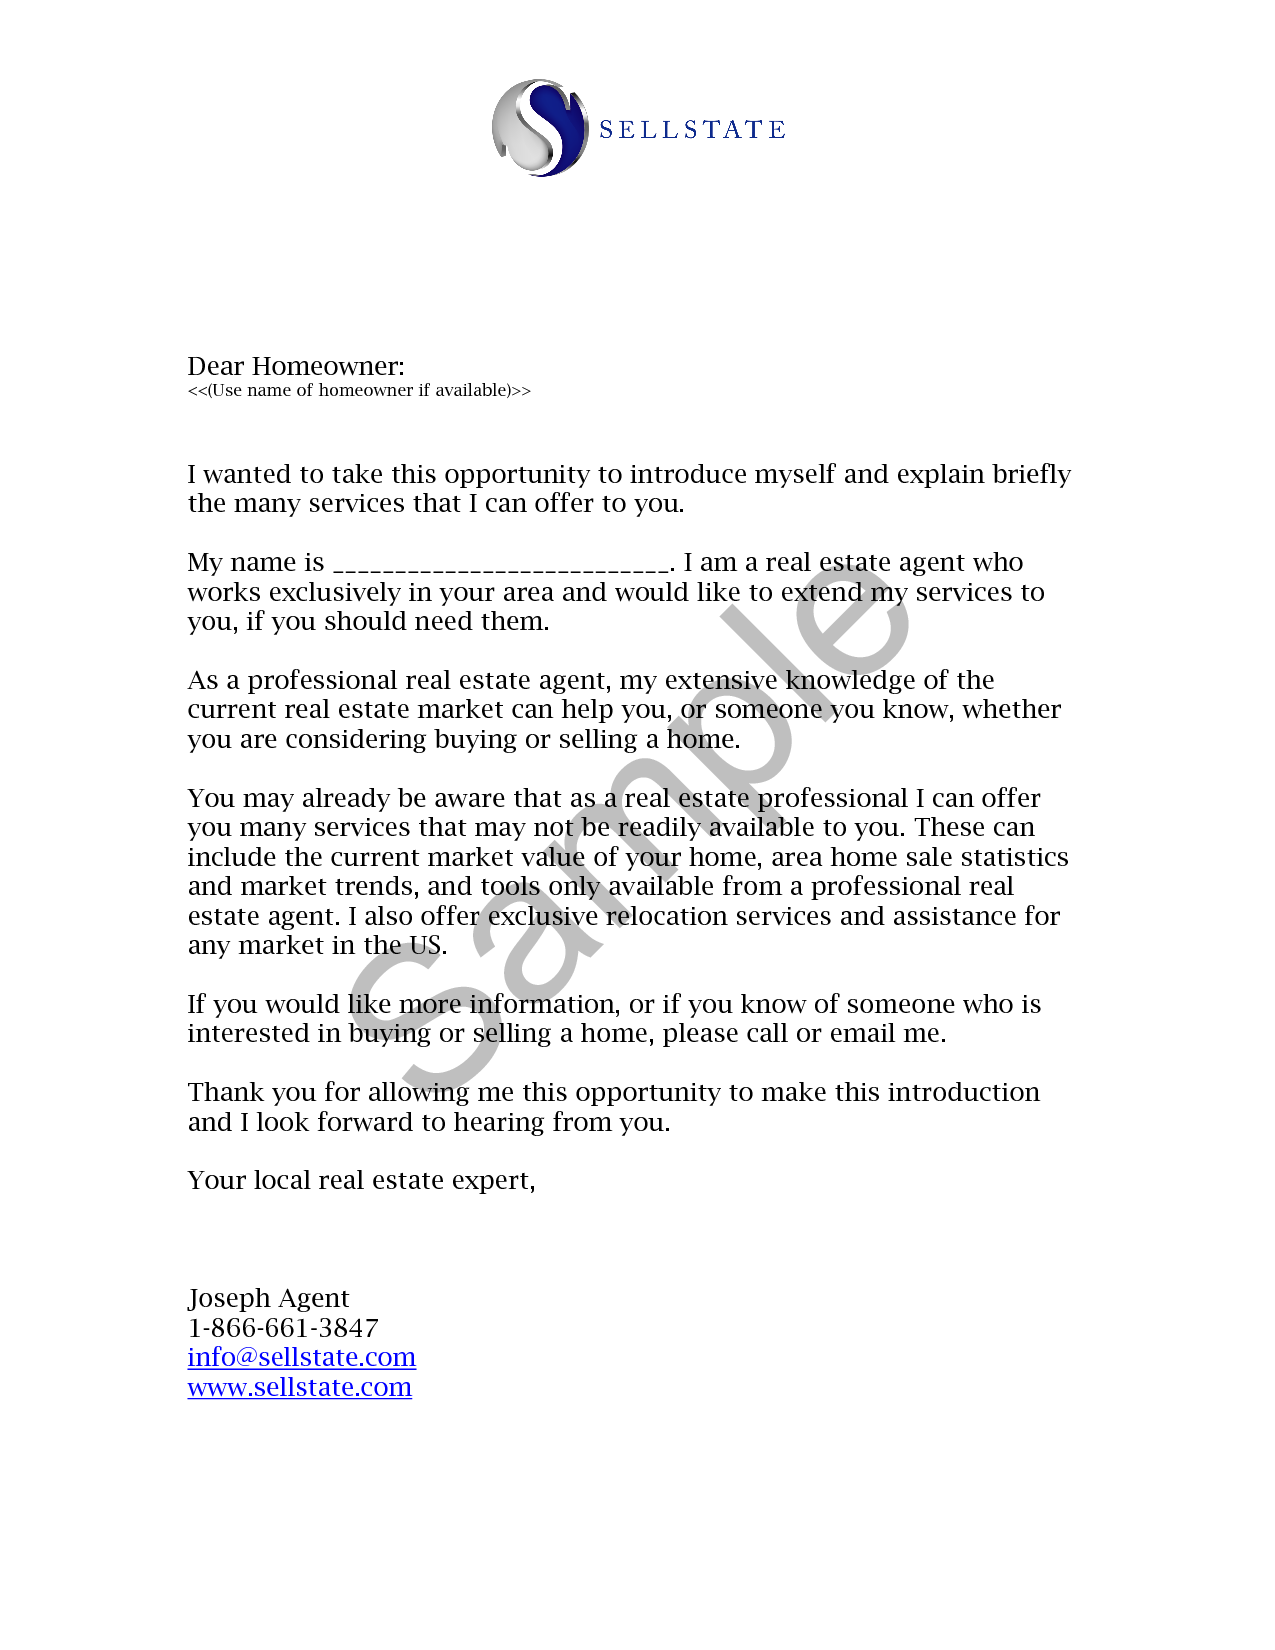 Real estate letters of introduction introduction letter for Introducing broker agreement template